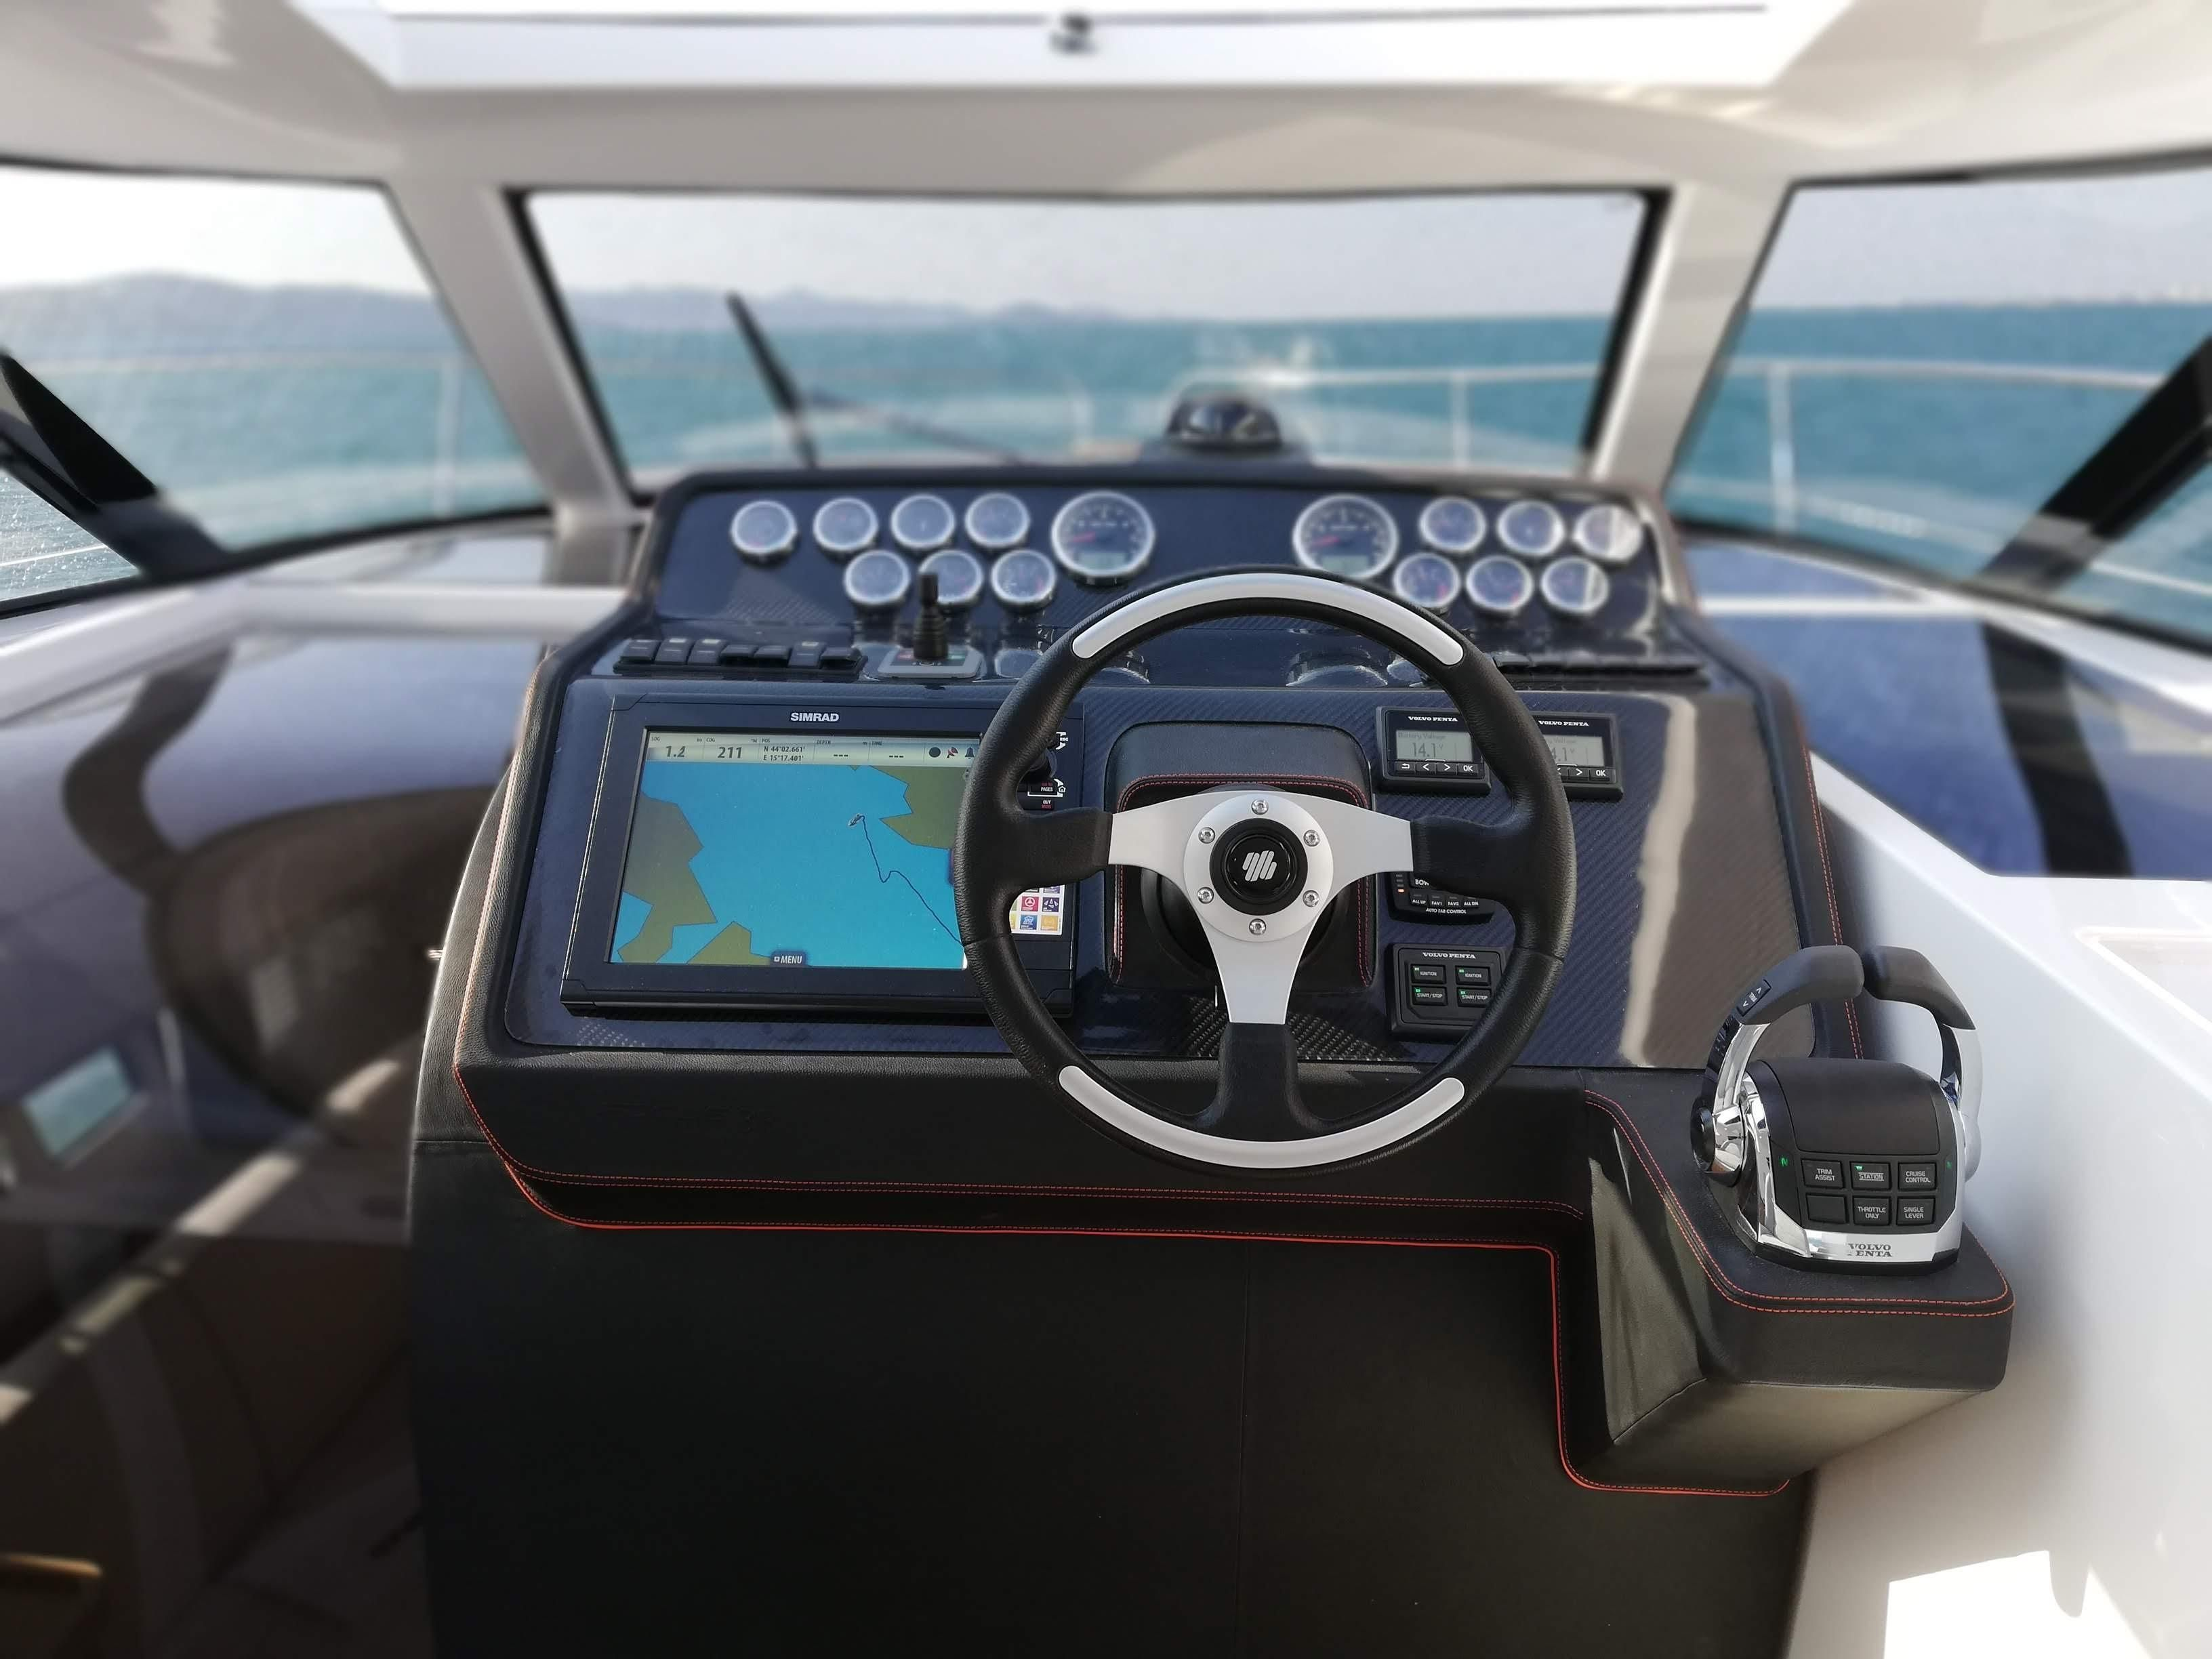 Used Yachts For Sale Below 40 Feet - SYS Yacht Sales